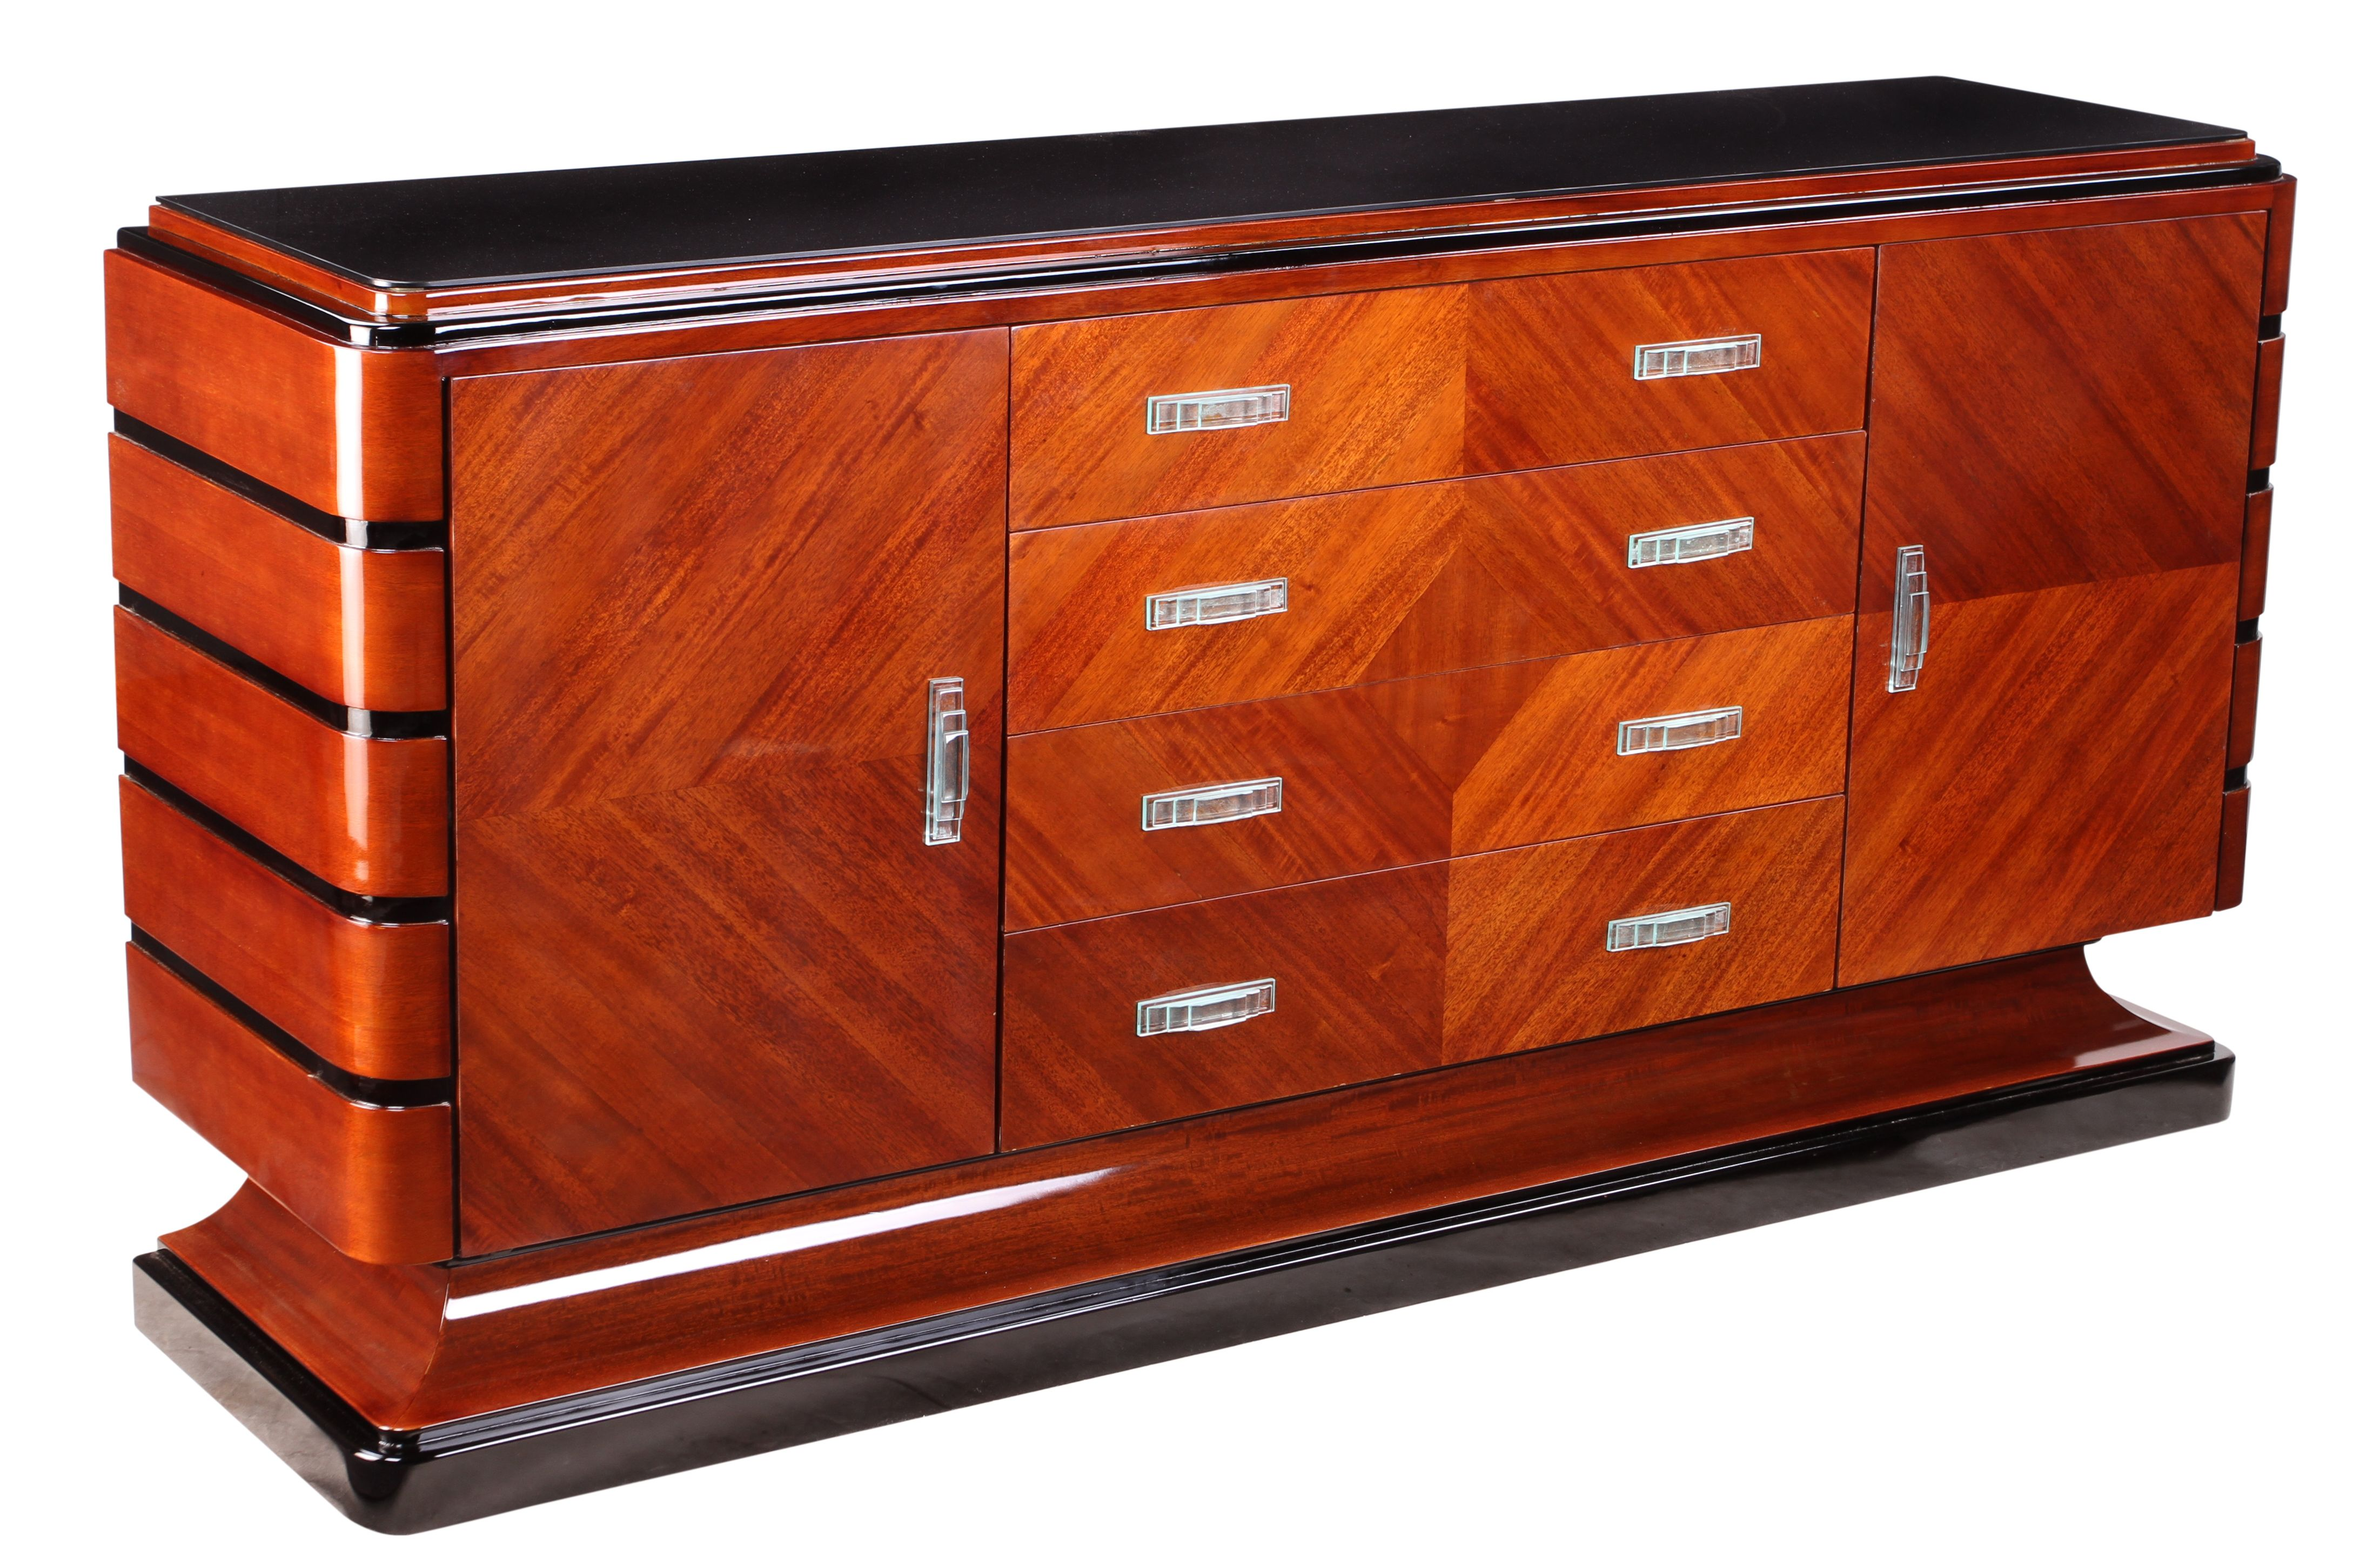 Art deco dressoir google zoeken art deco pinterest for Art deco meubilair